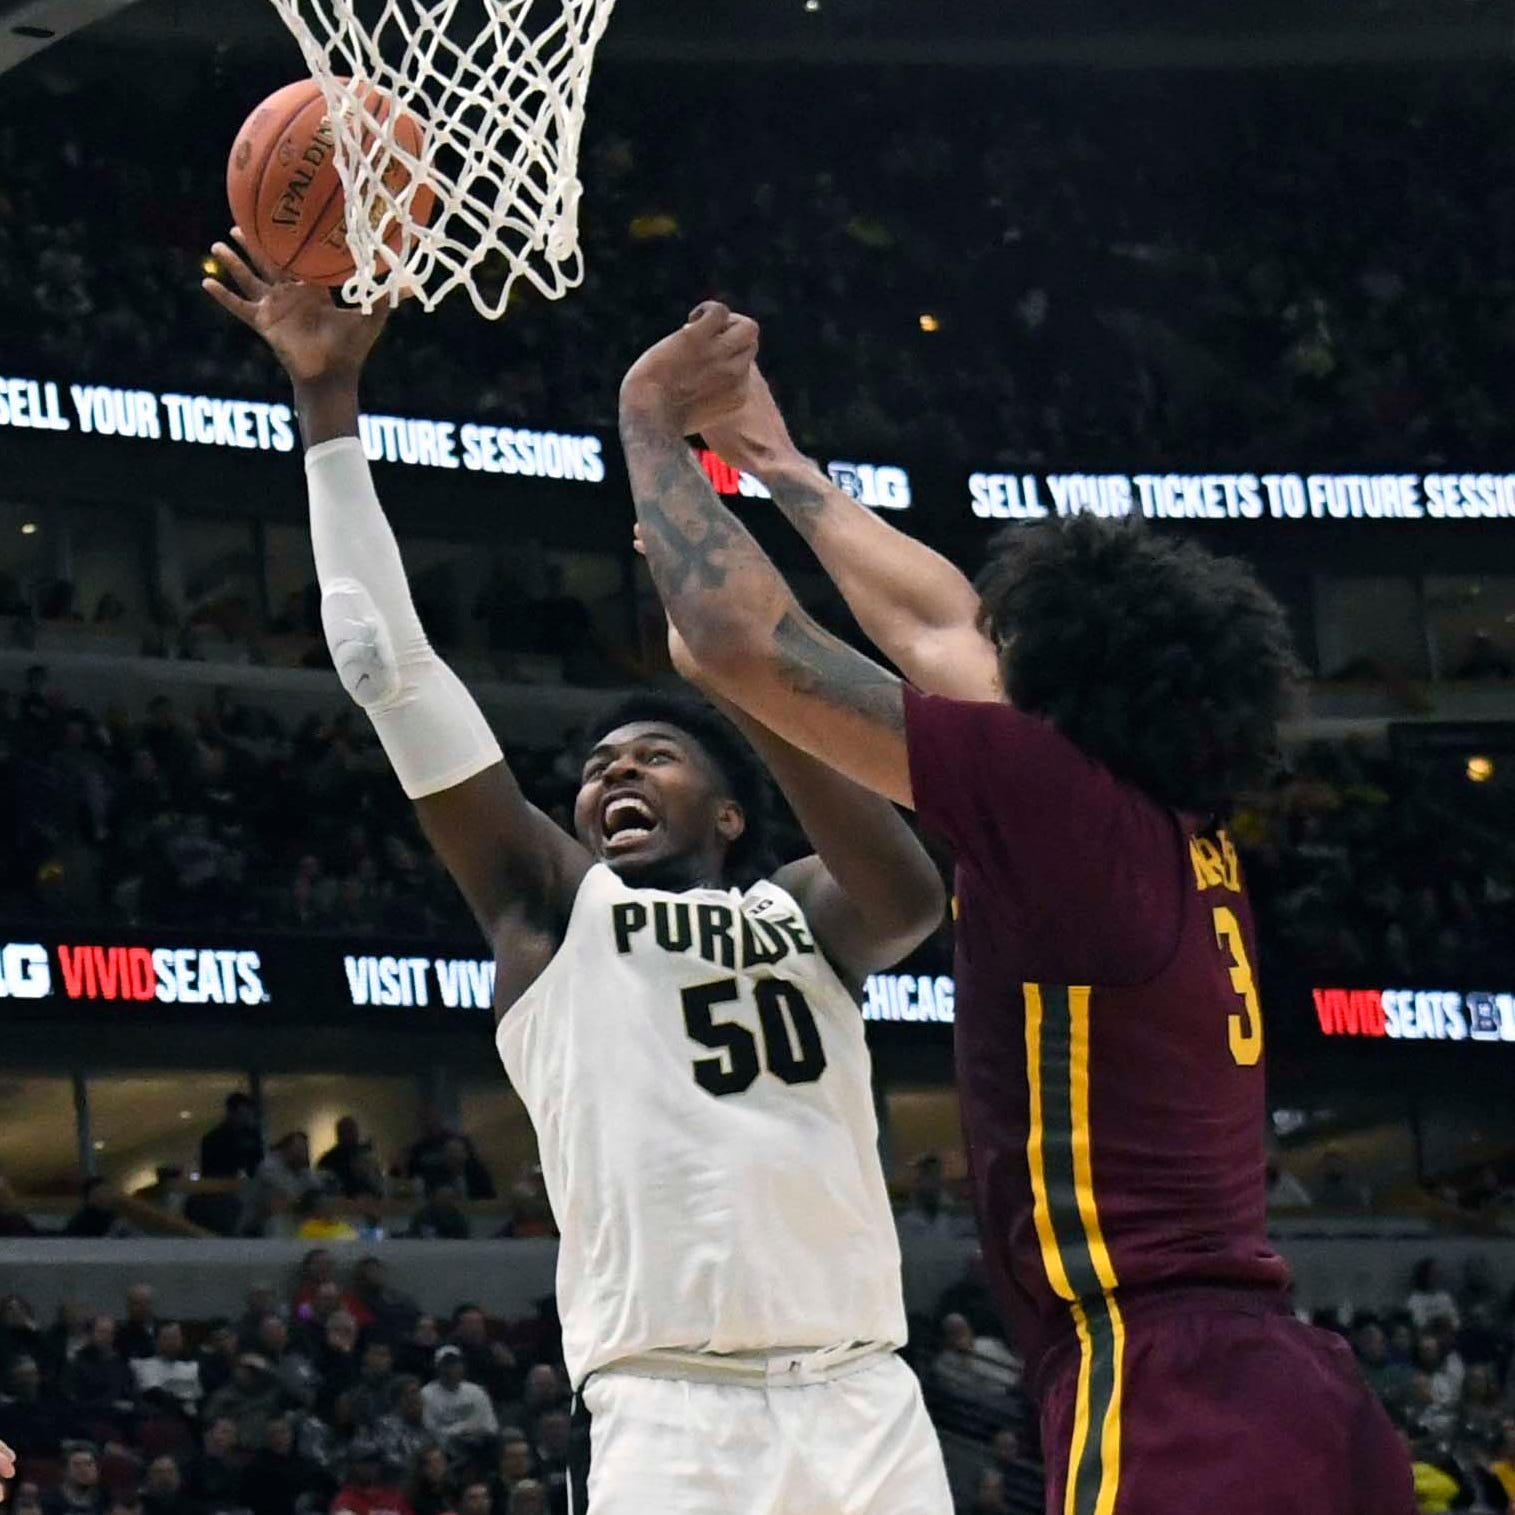 Purdue basketball's young bench took first postseason steps in loss to Minnesota